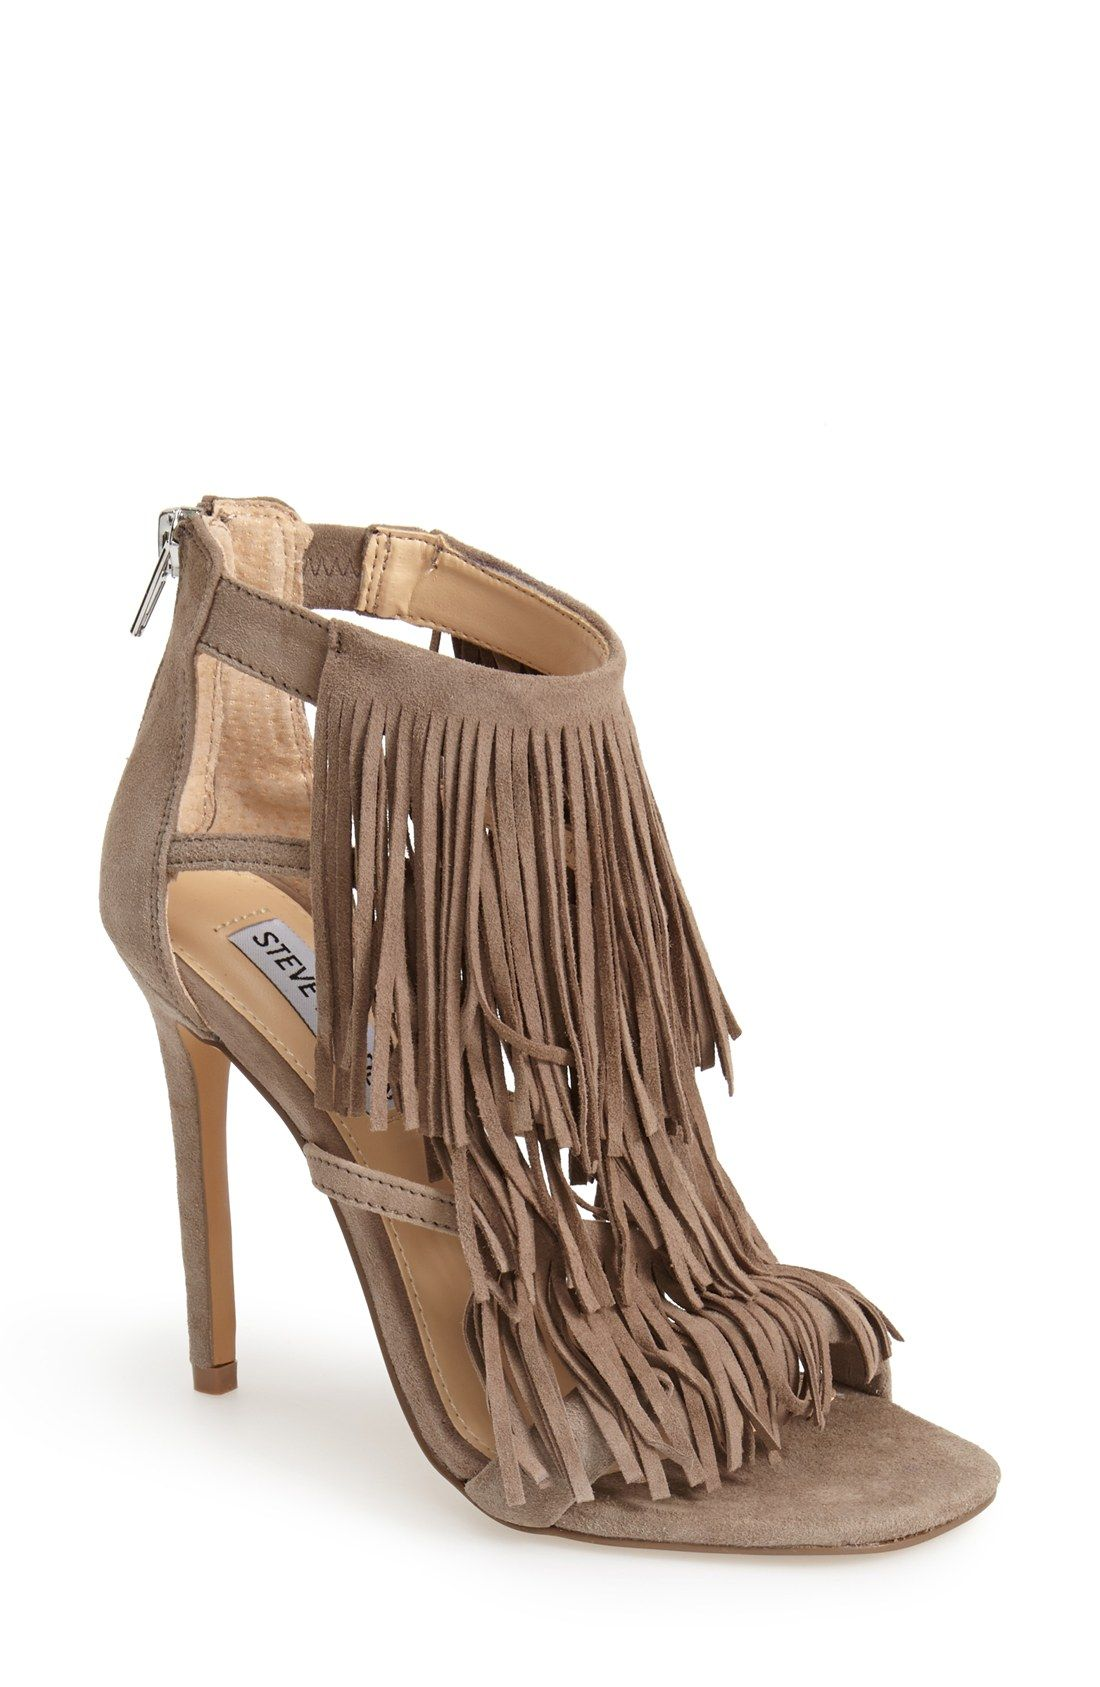 2495156ddd Rocking these Steve Madden fringe sandals with cute boyfriend jeans ...